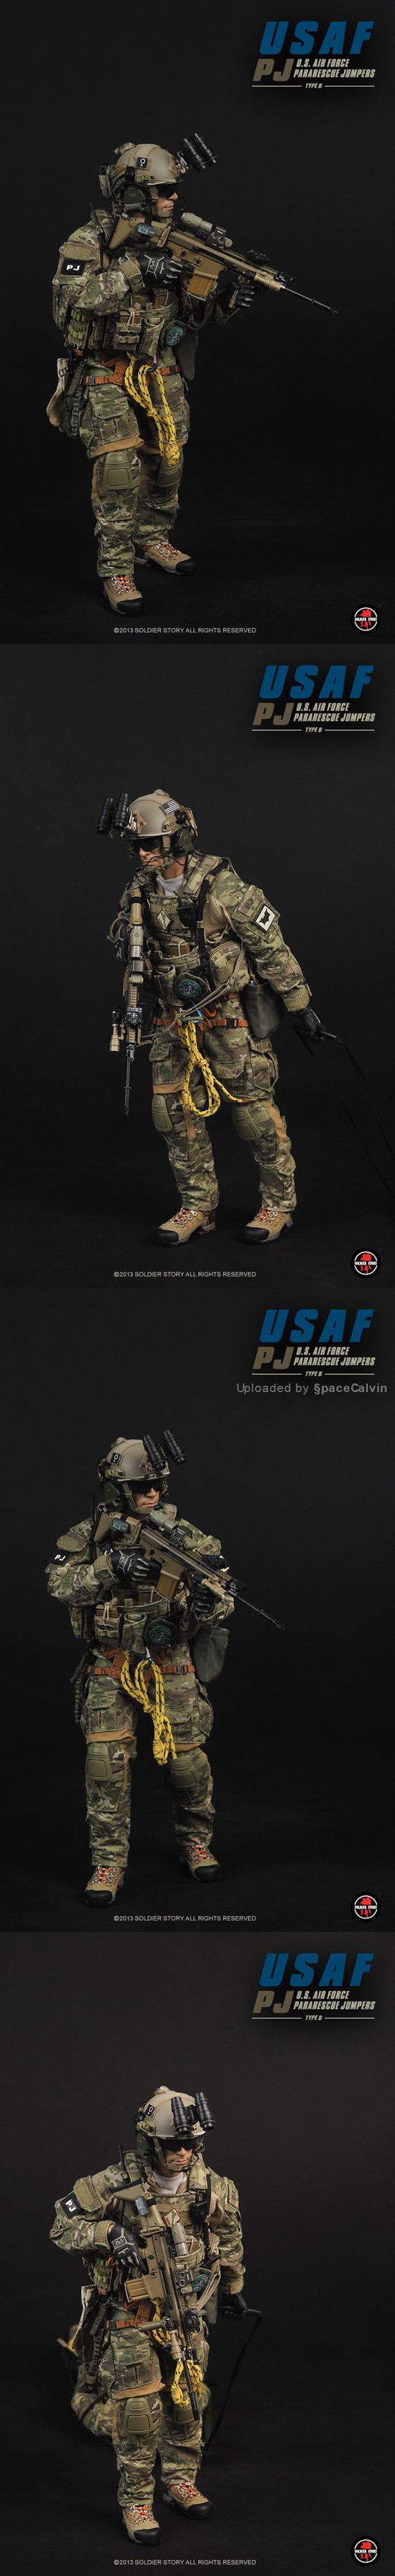 1/6 Scale Military Figure_U.S. Air Force Pararescue Jumpers USAF PJ(TYPE B) by Soldier Story